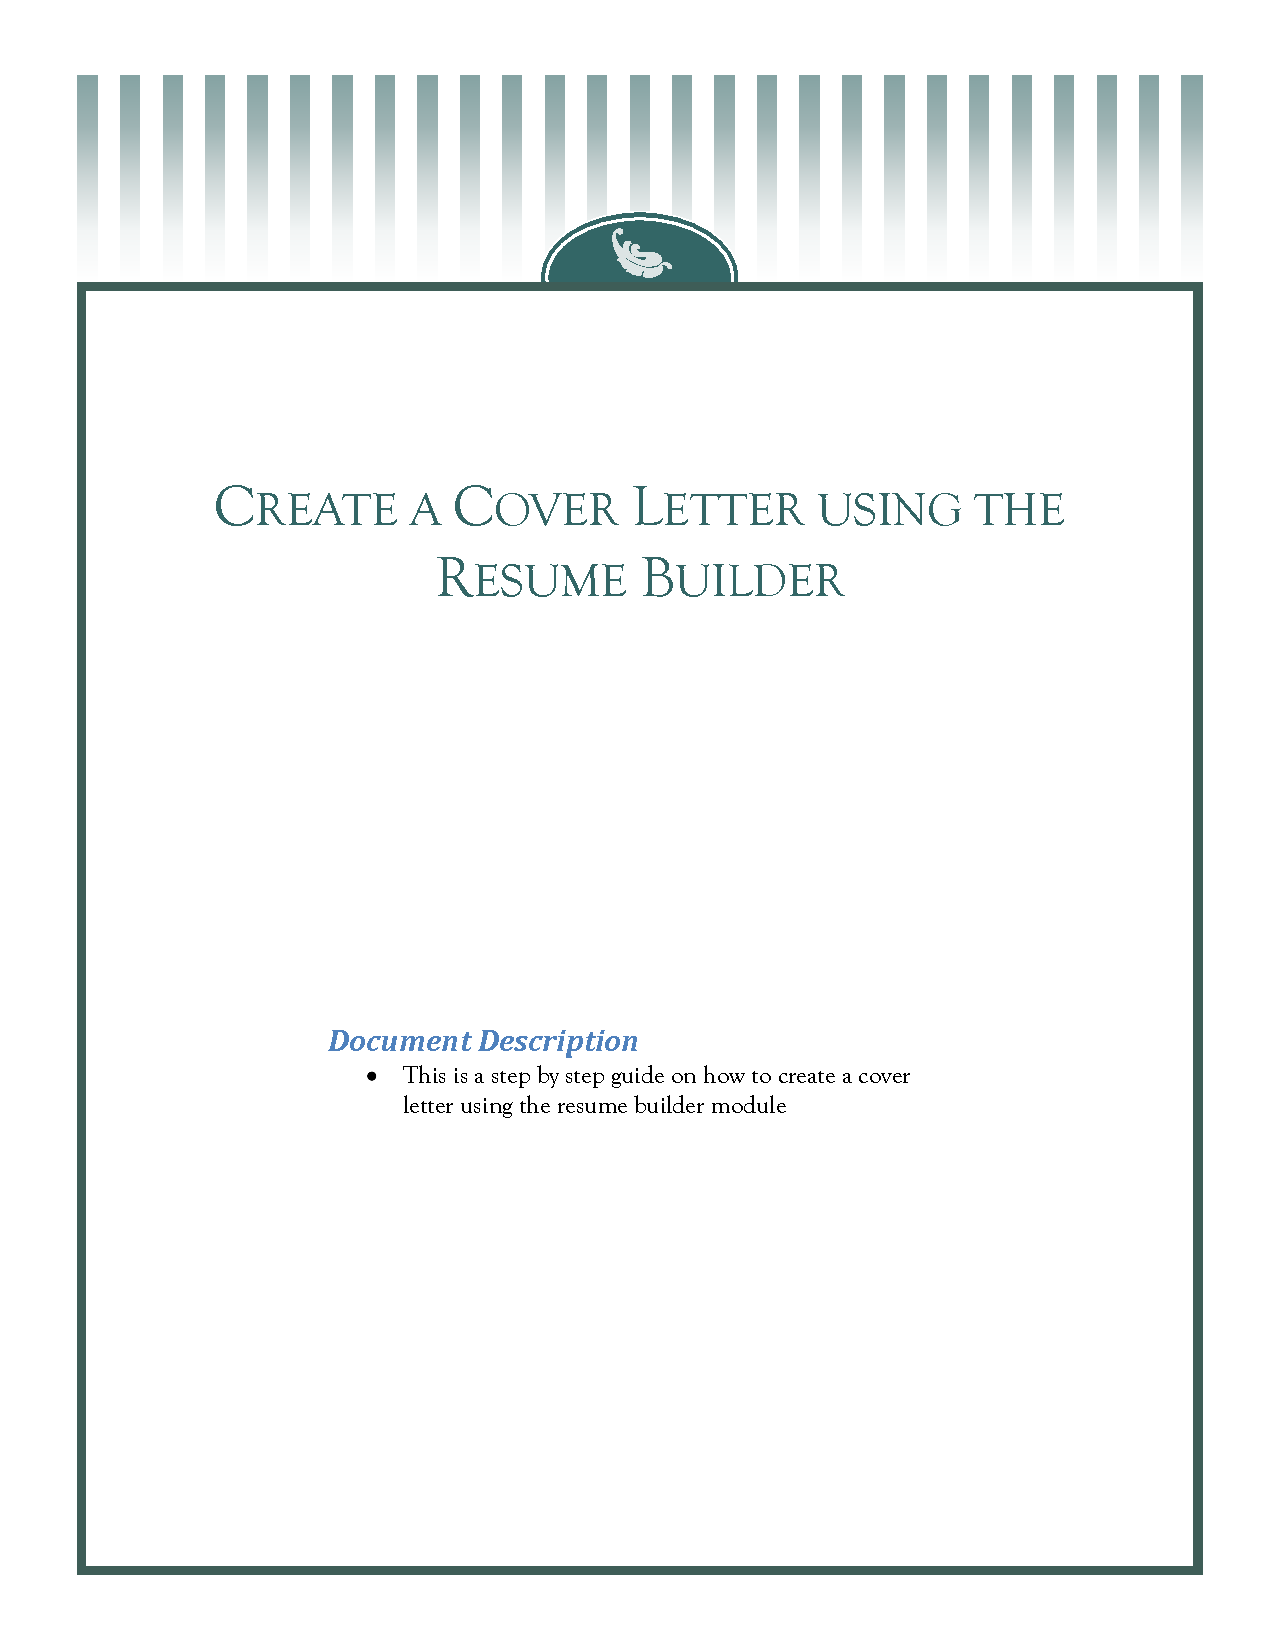 cover letters for a resume melbourne resumes cover letter how to build a cover letter resume